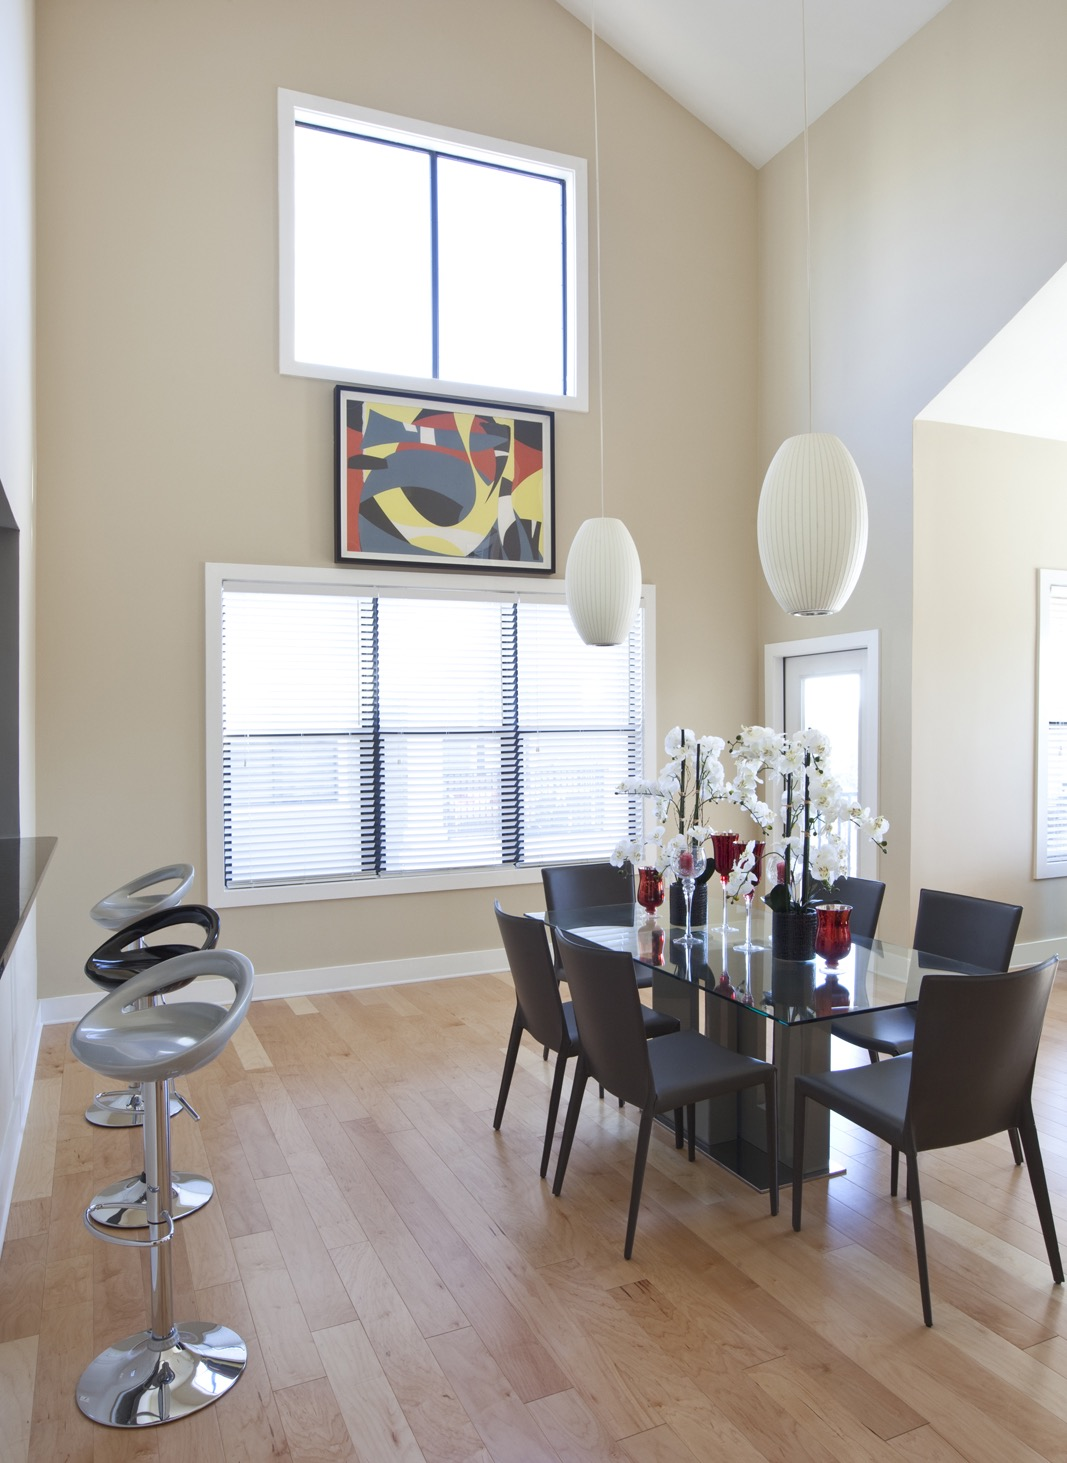 Modern Dining Room With Natural Light (View 26 of 32)